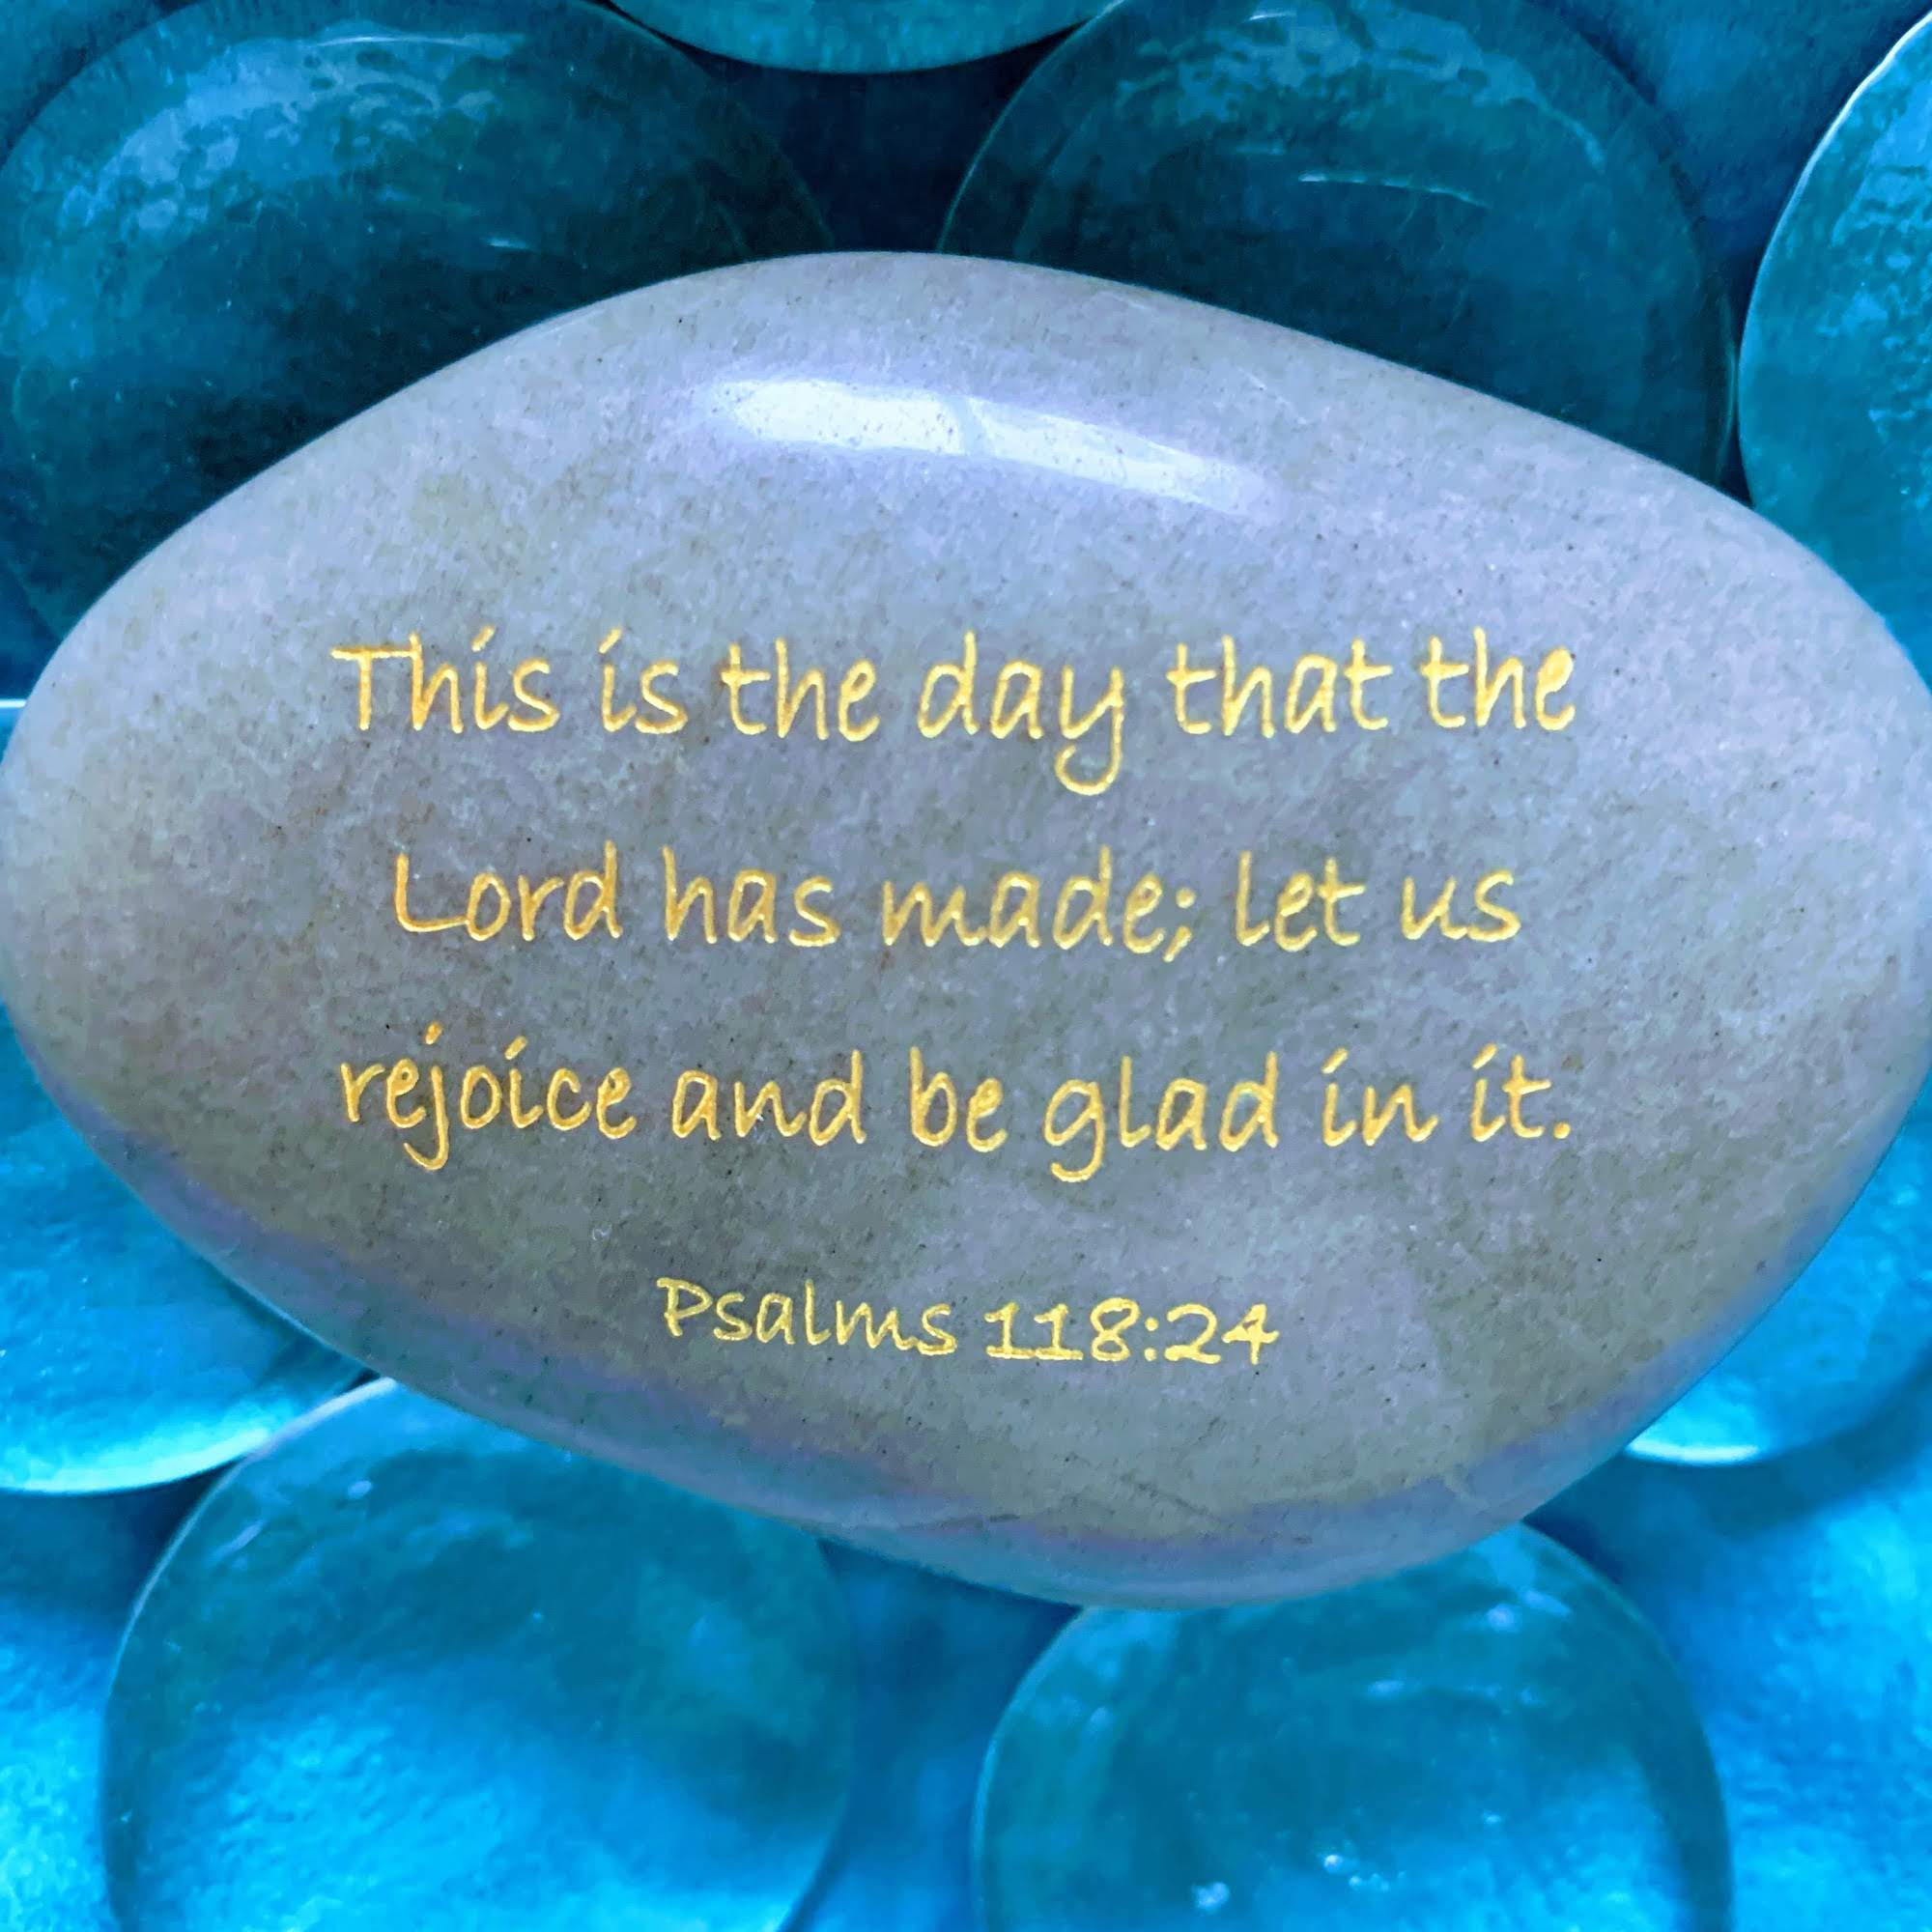 A rock inscribed with the verse: This is the day that the Lord has made. I will rejoice and be glad in it.